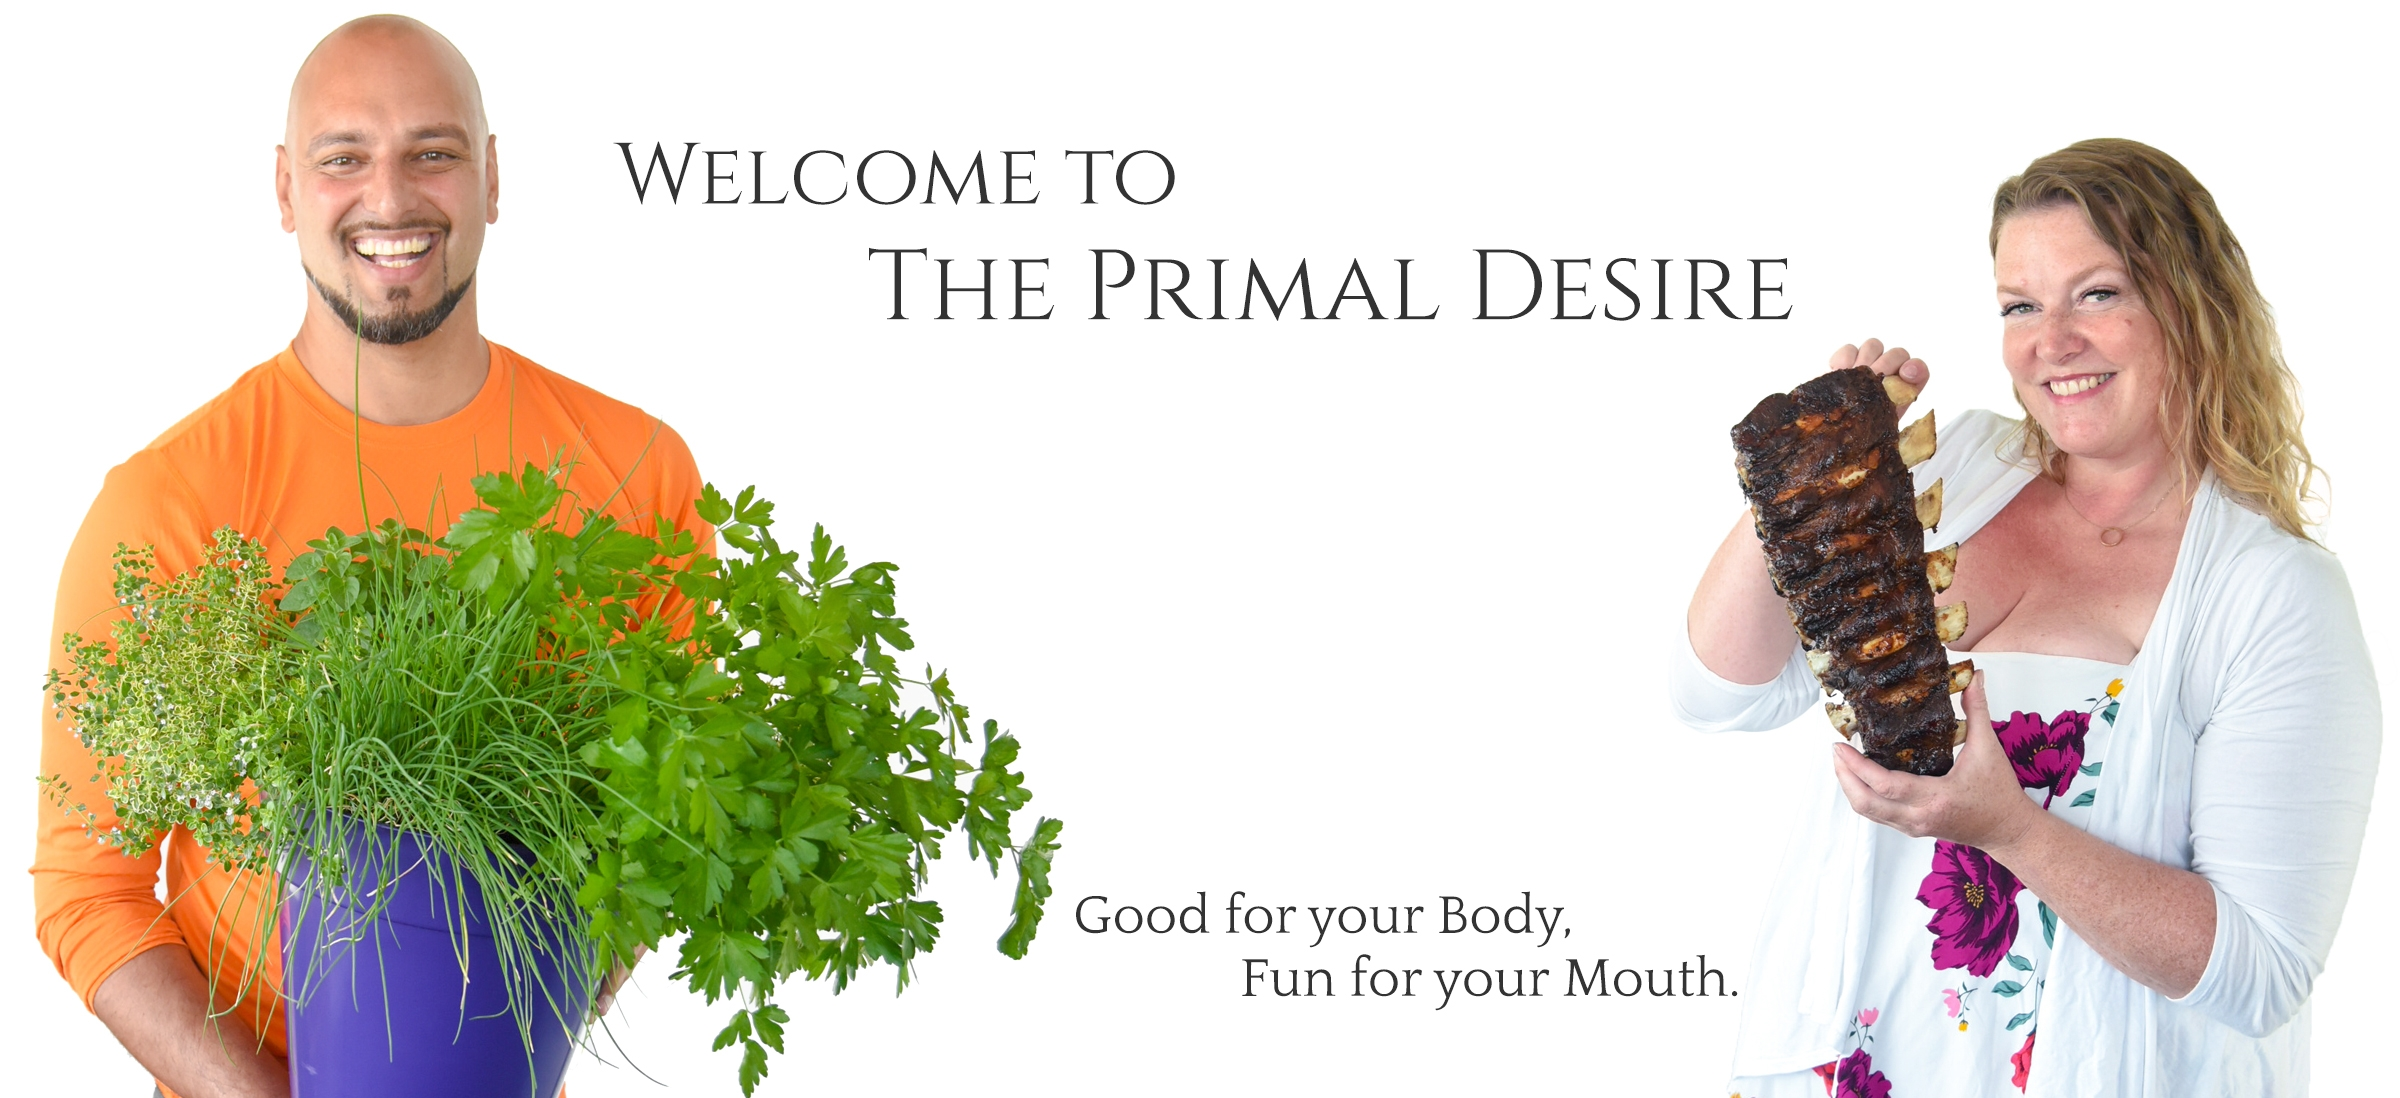 The-Primal-Desire—Good-for-your-Body,-Fun-for-your-Mouth